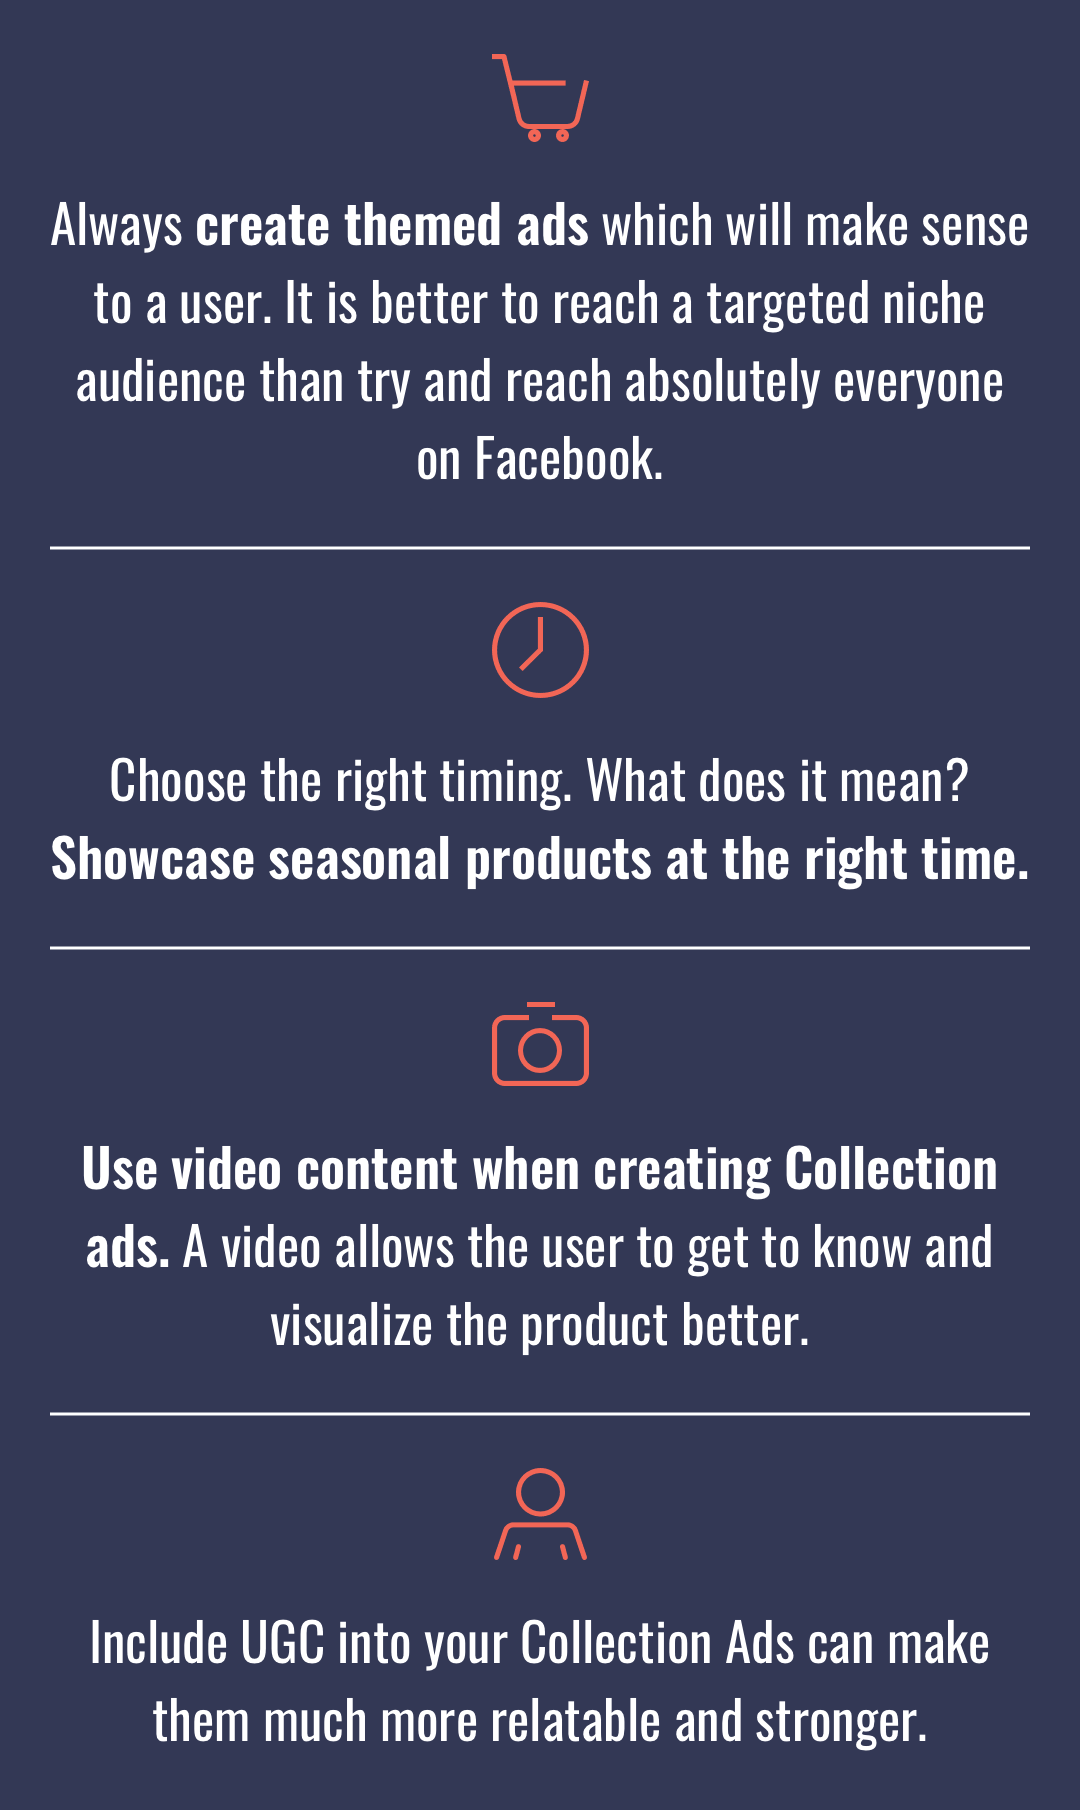 Facebook_collection_infographic-min